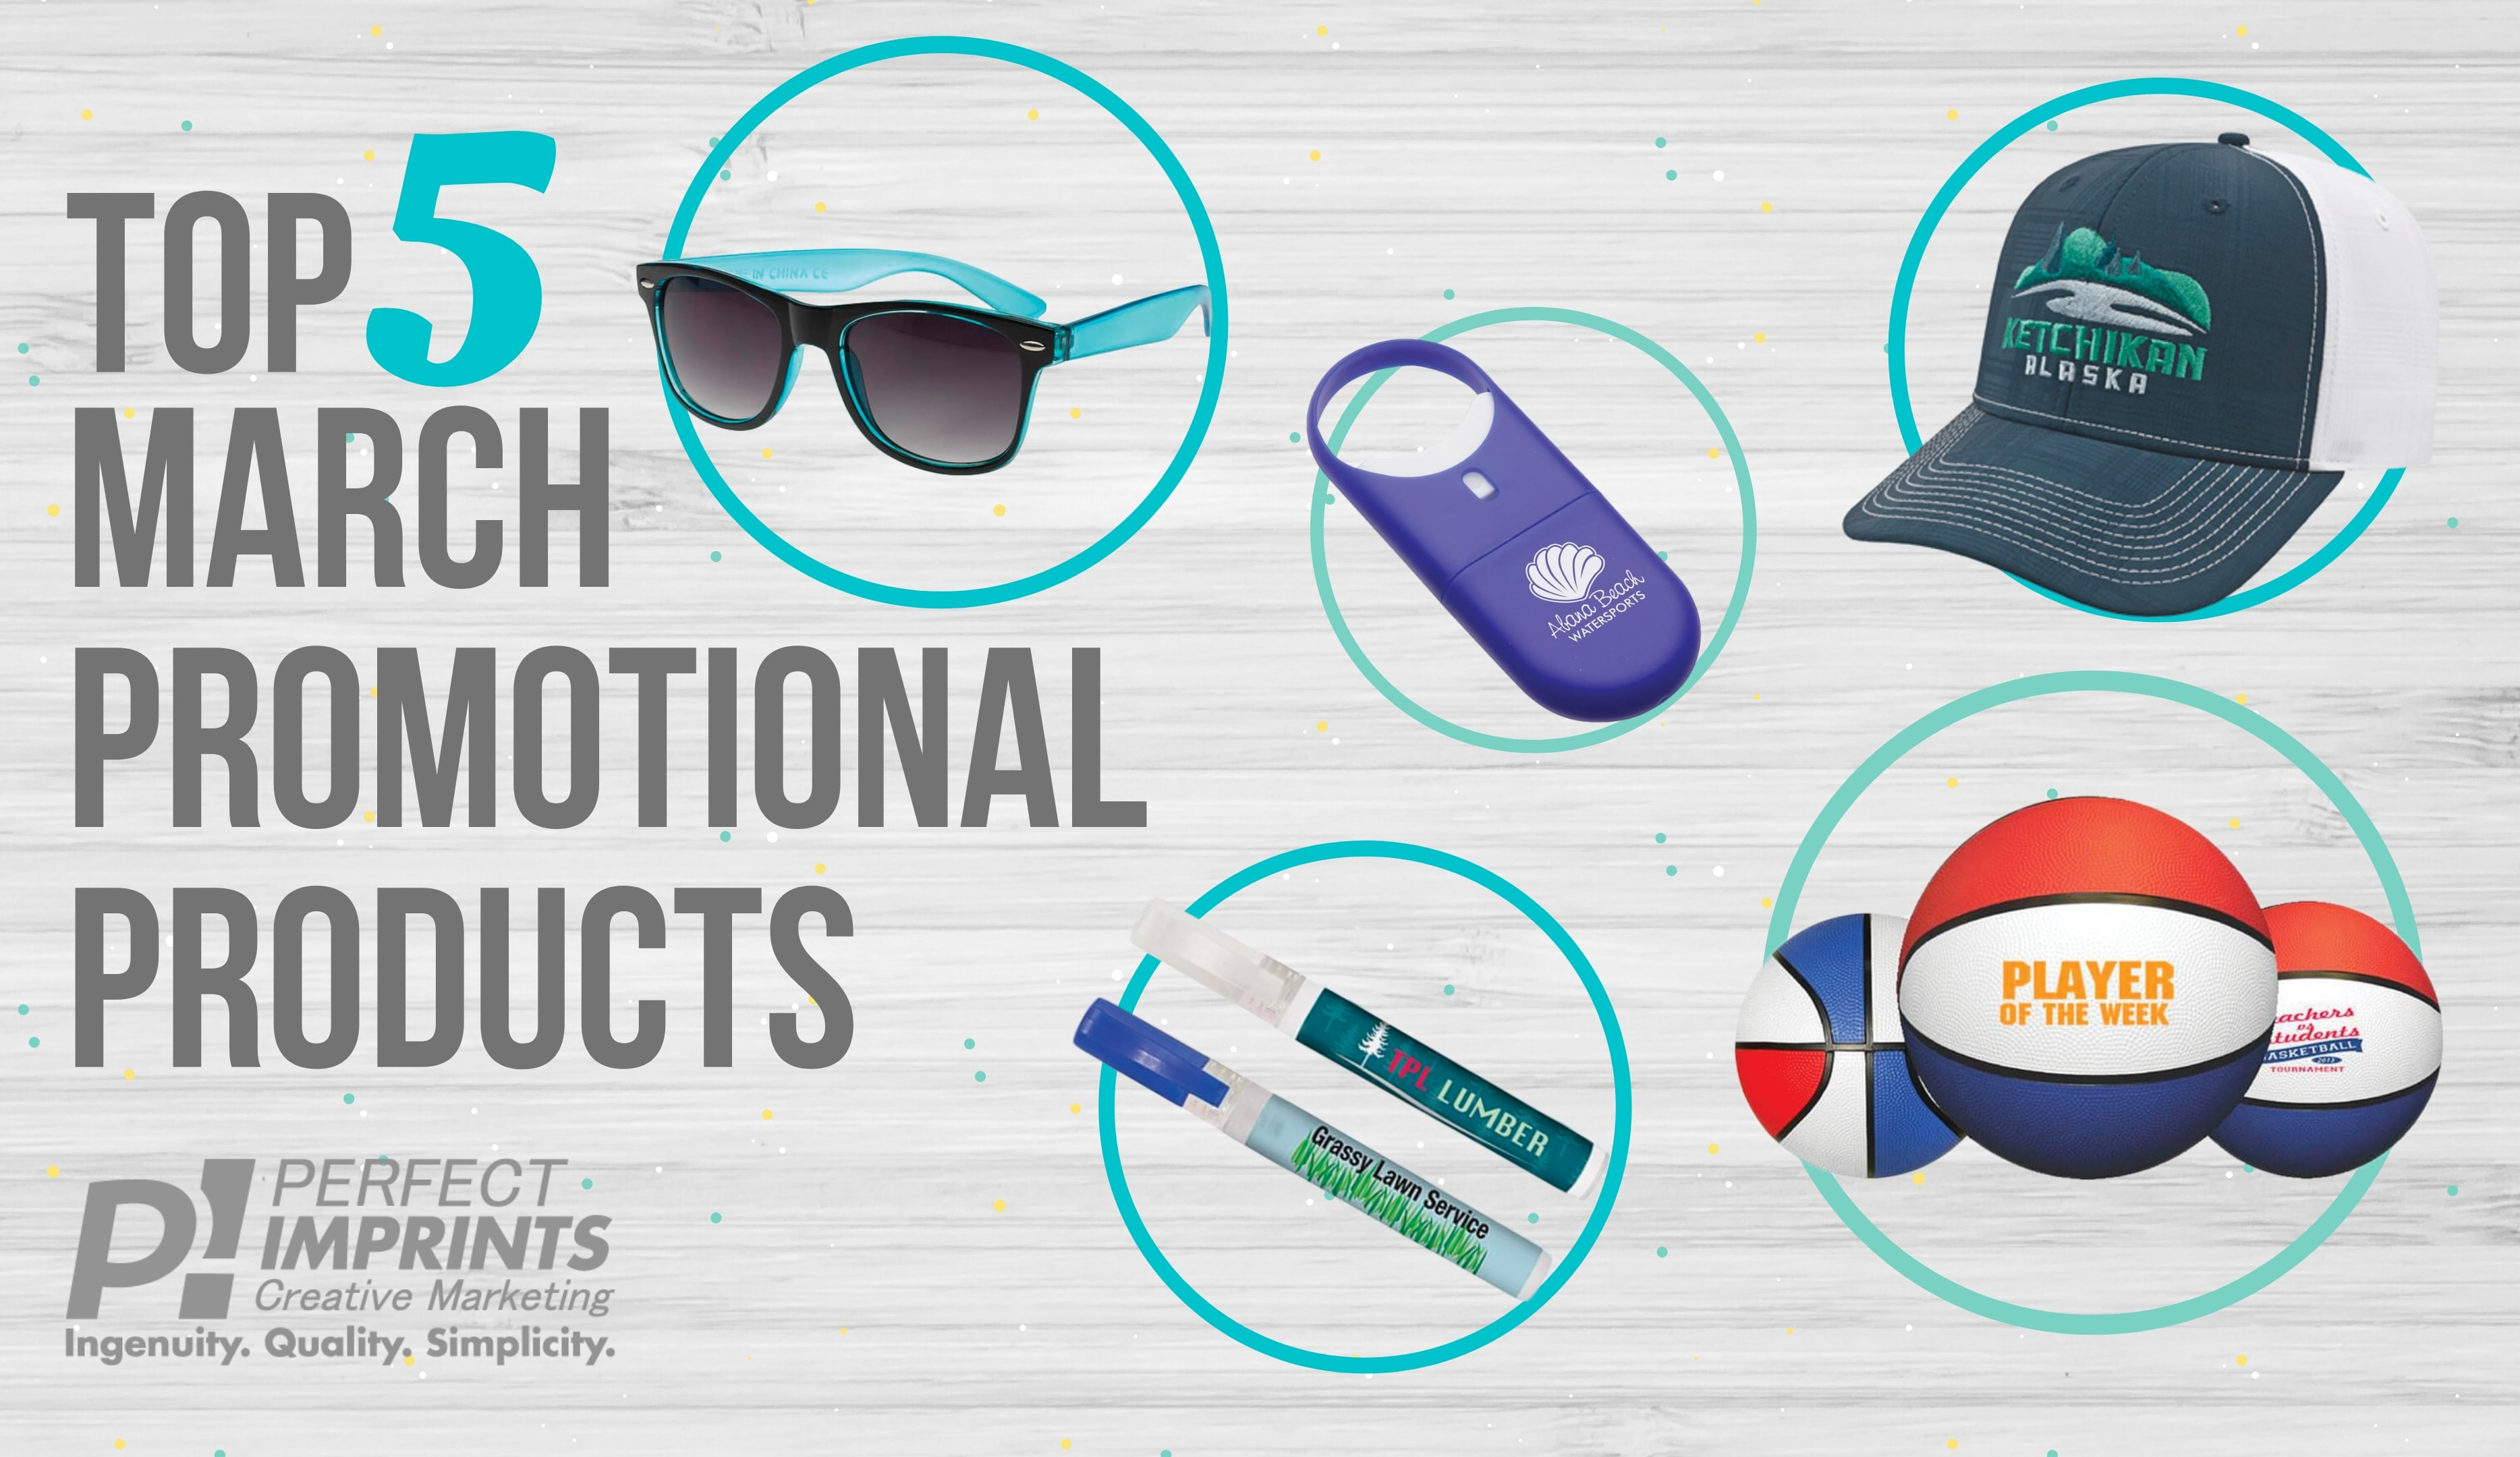 Top 5 March Promotional Products